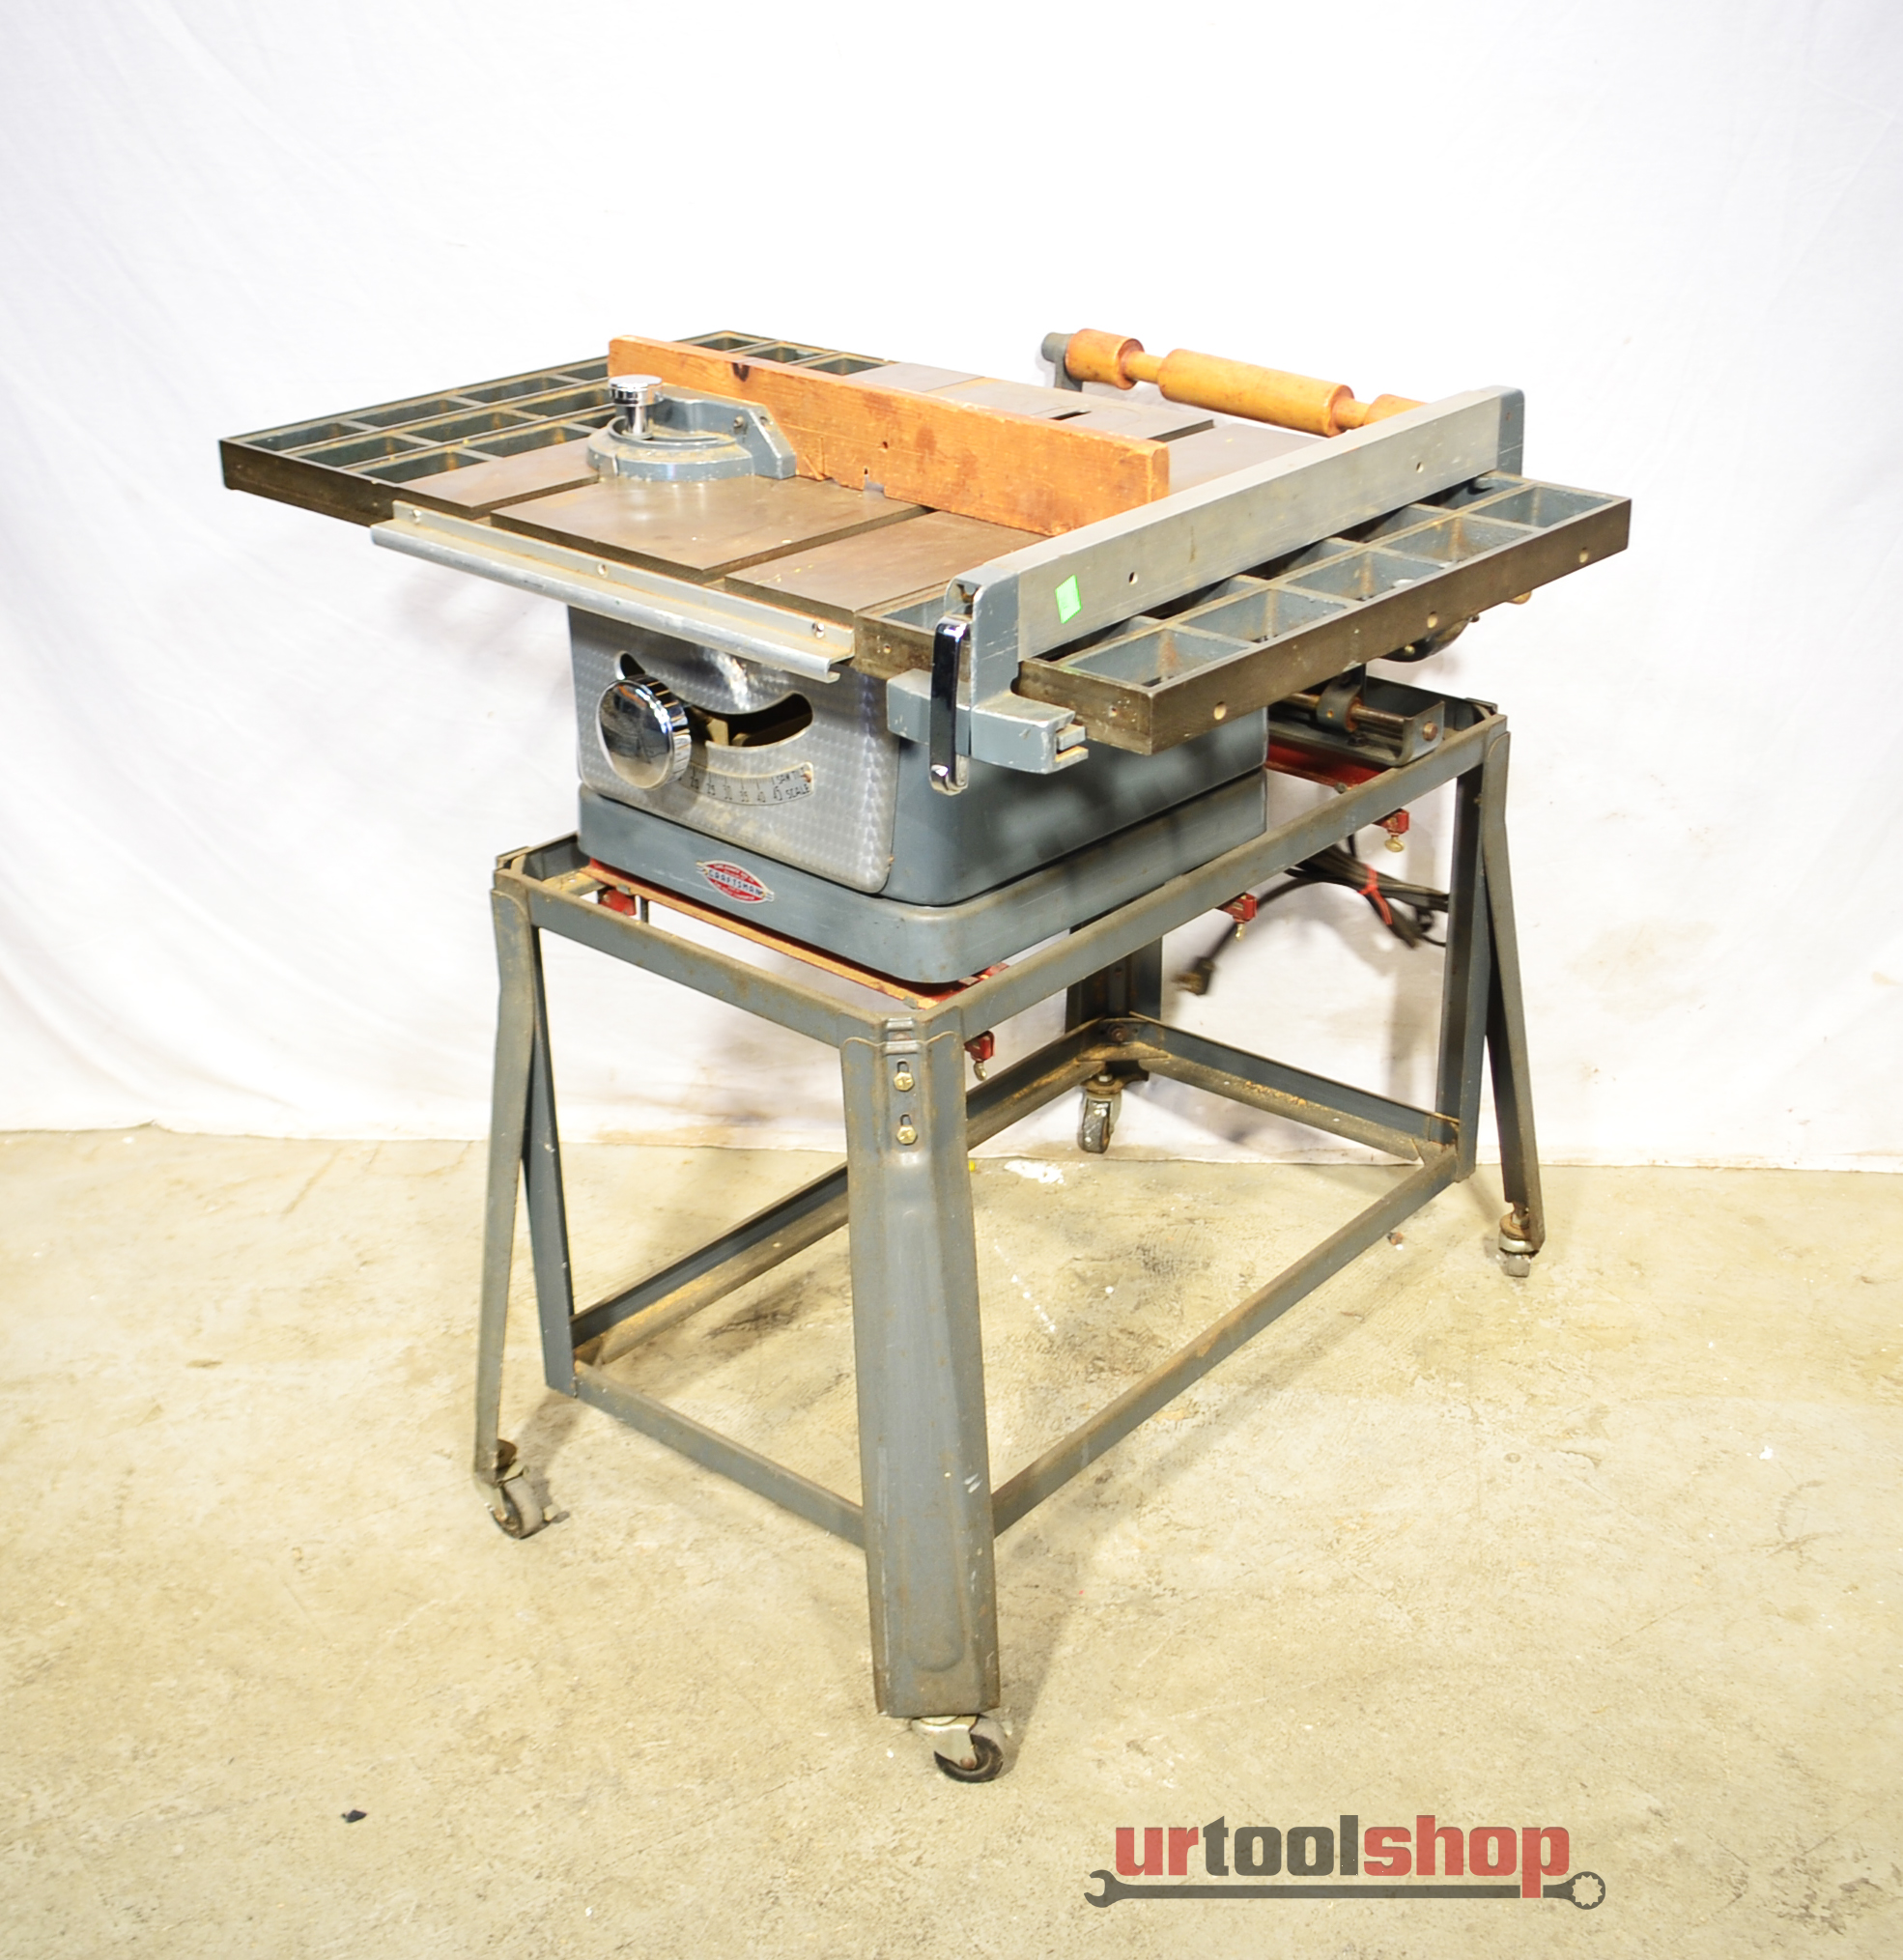 Vintage Sears Craftsman 8 Tilting Arbor Bench Table Saw 3367 5 Ebay